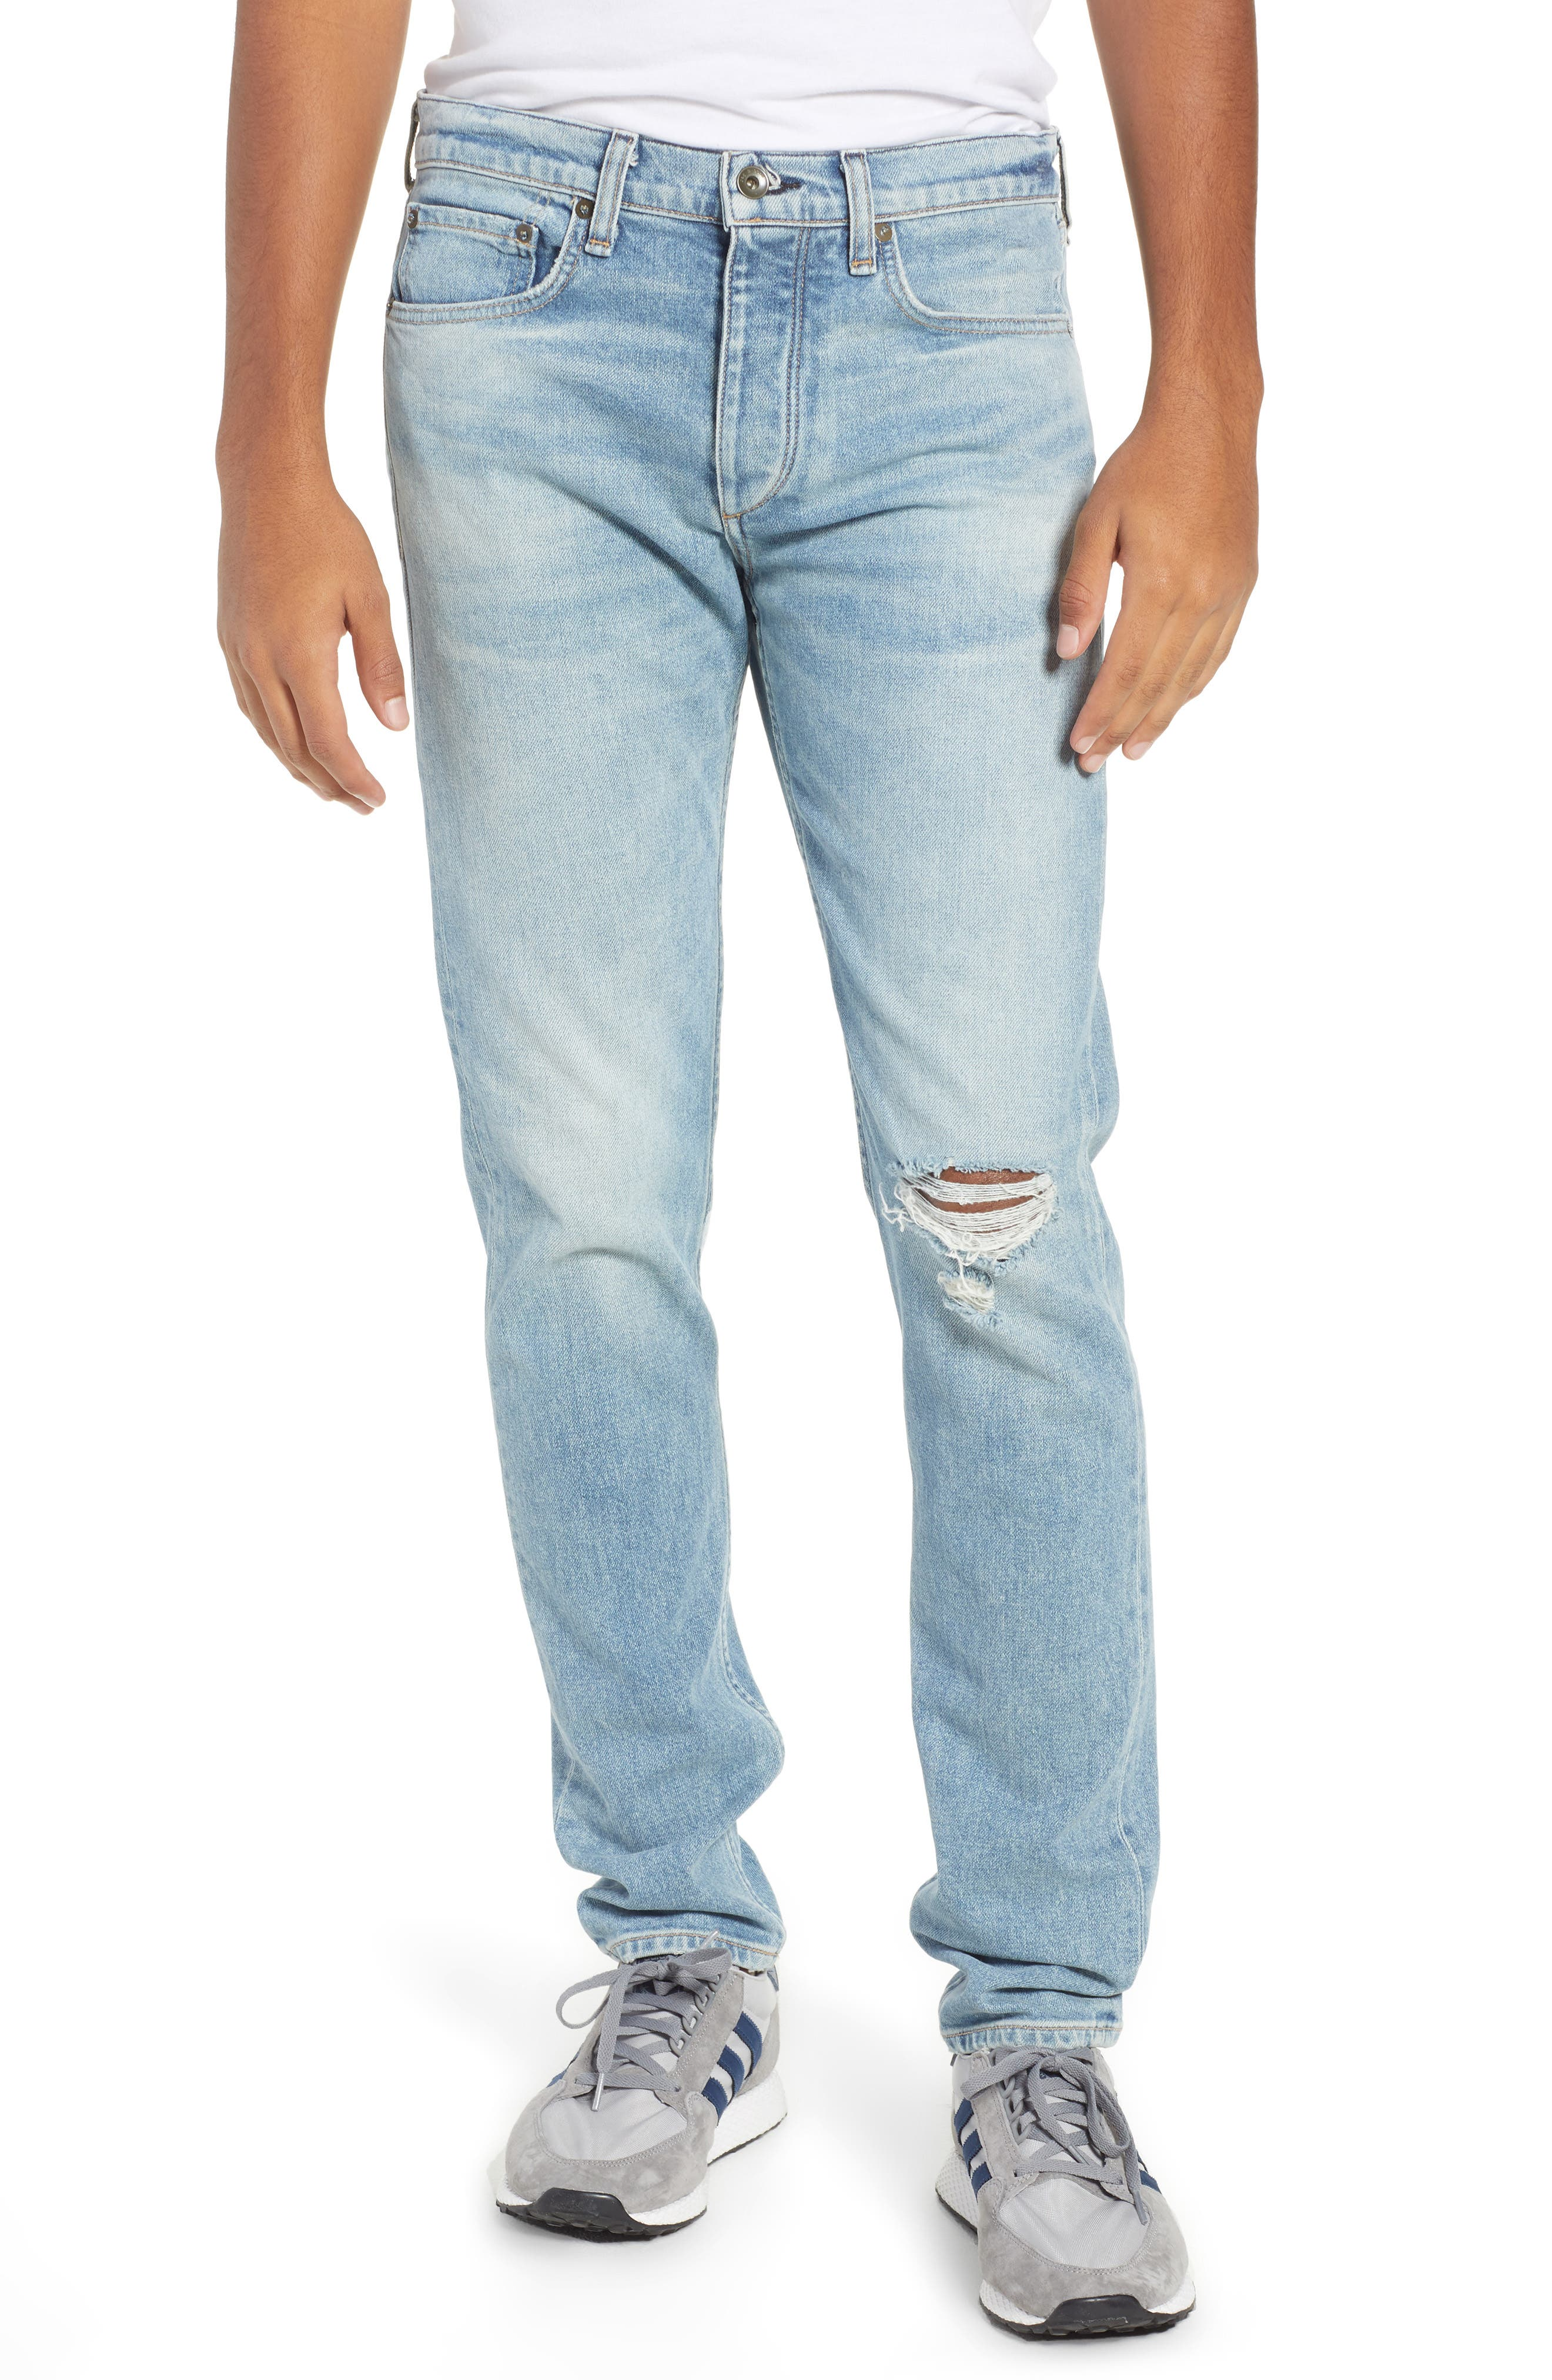 Fit 2 Slim Fit Jeans,                             Main thumbnail 1, color,                             JAMIE WITH HOLES